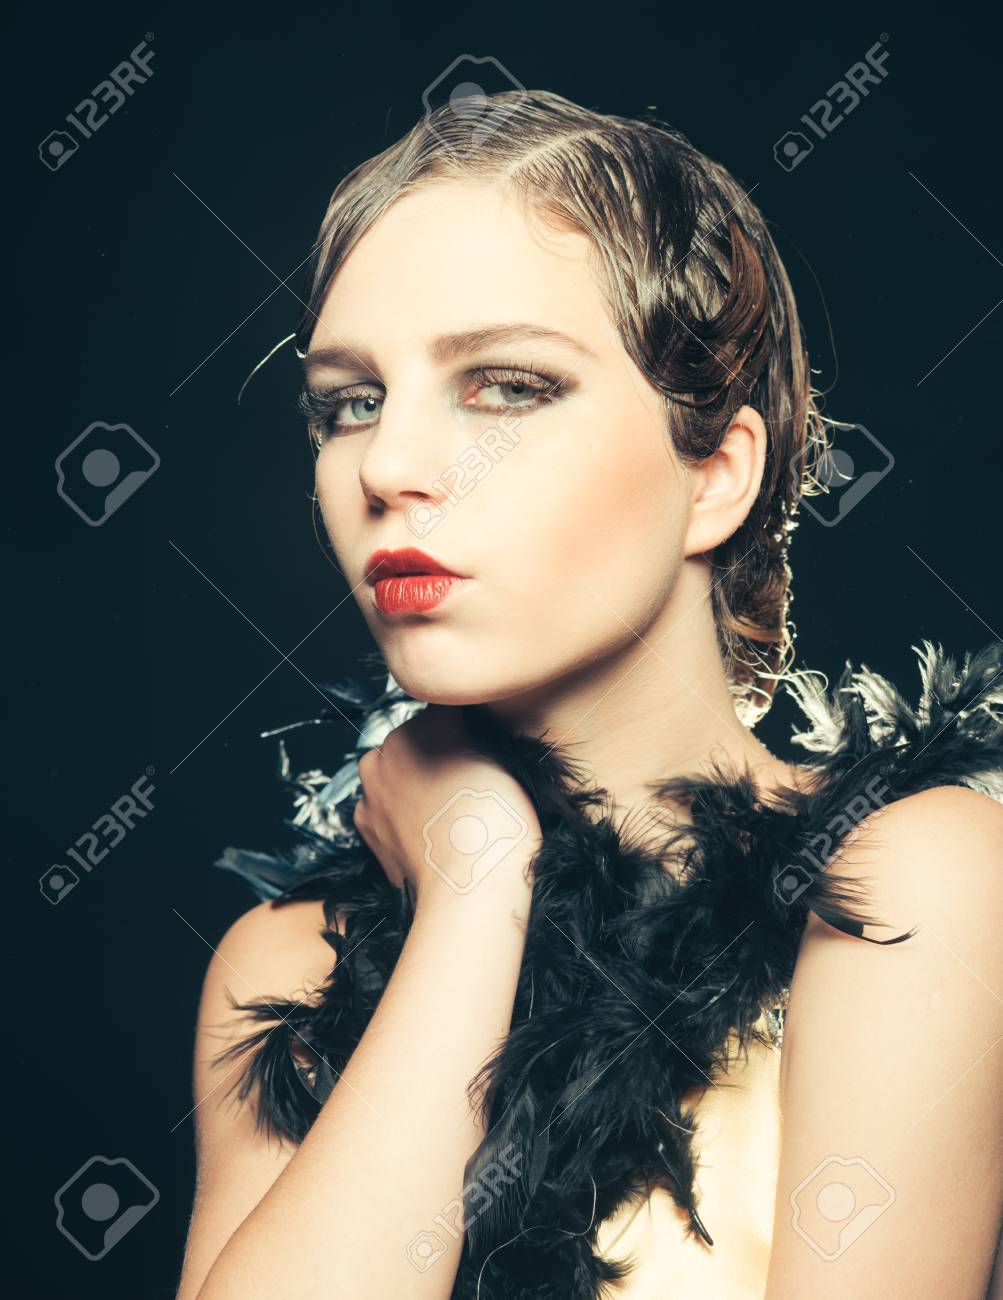 pinup girl in boa with retro hair and makeup on black background,..